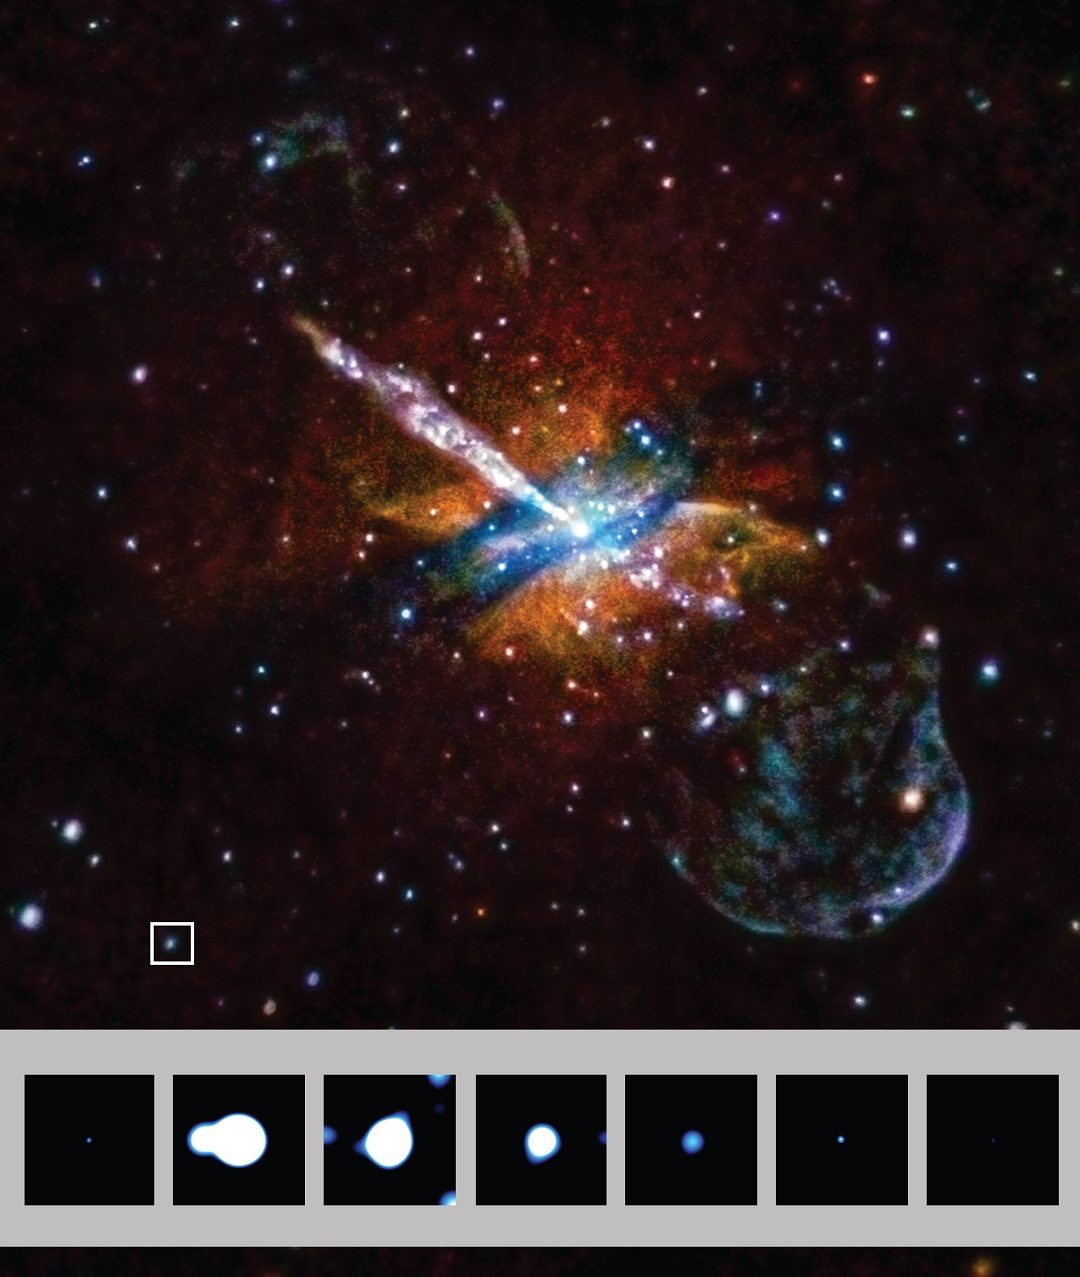 http://www.nasa.gov/sites/default/files/thumbnails/image/ngc5128.jpg